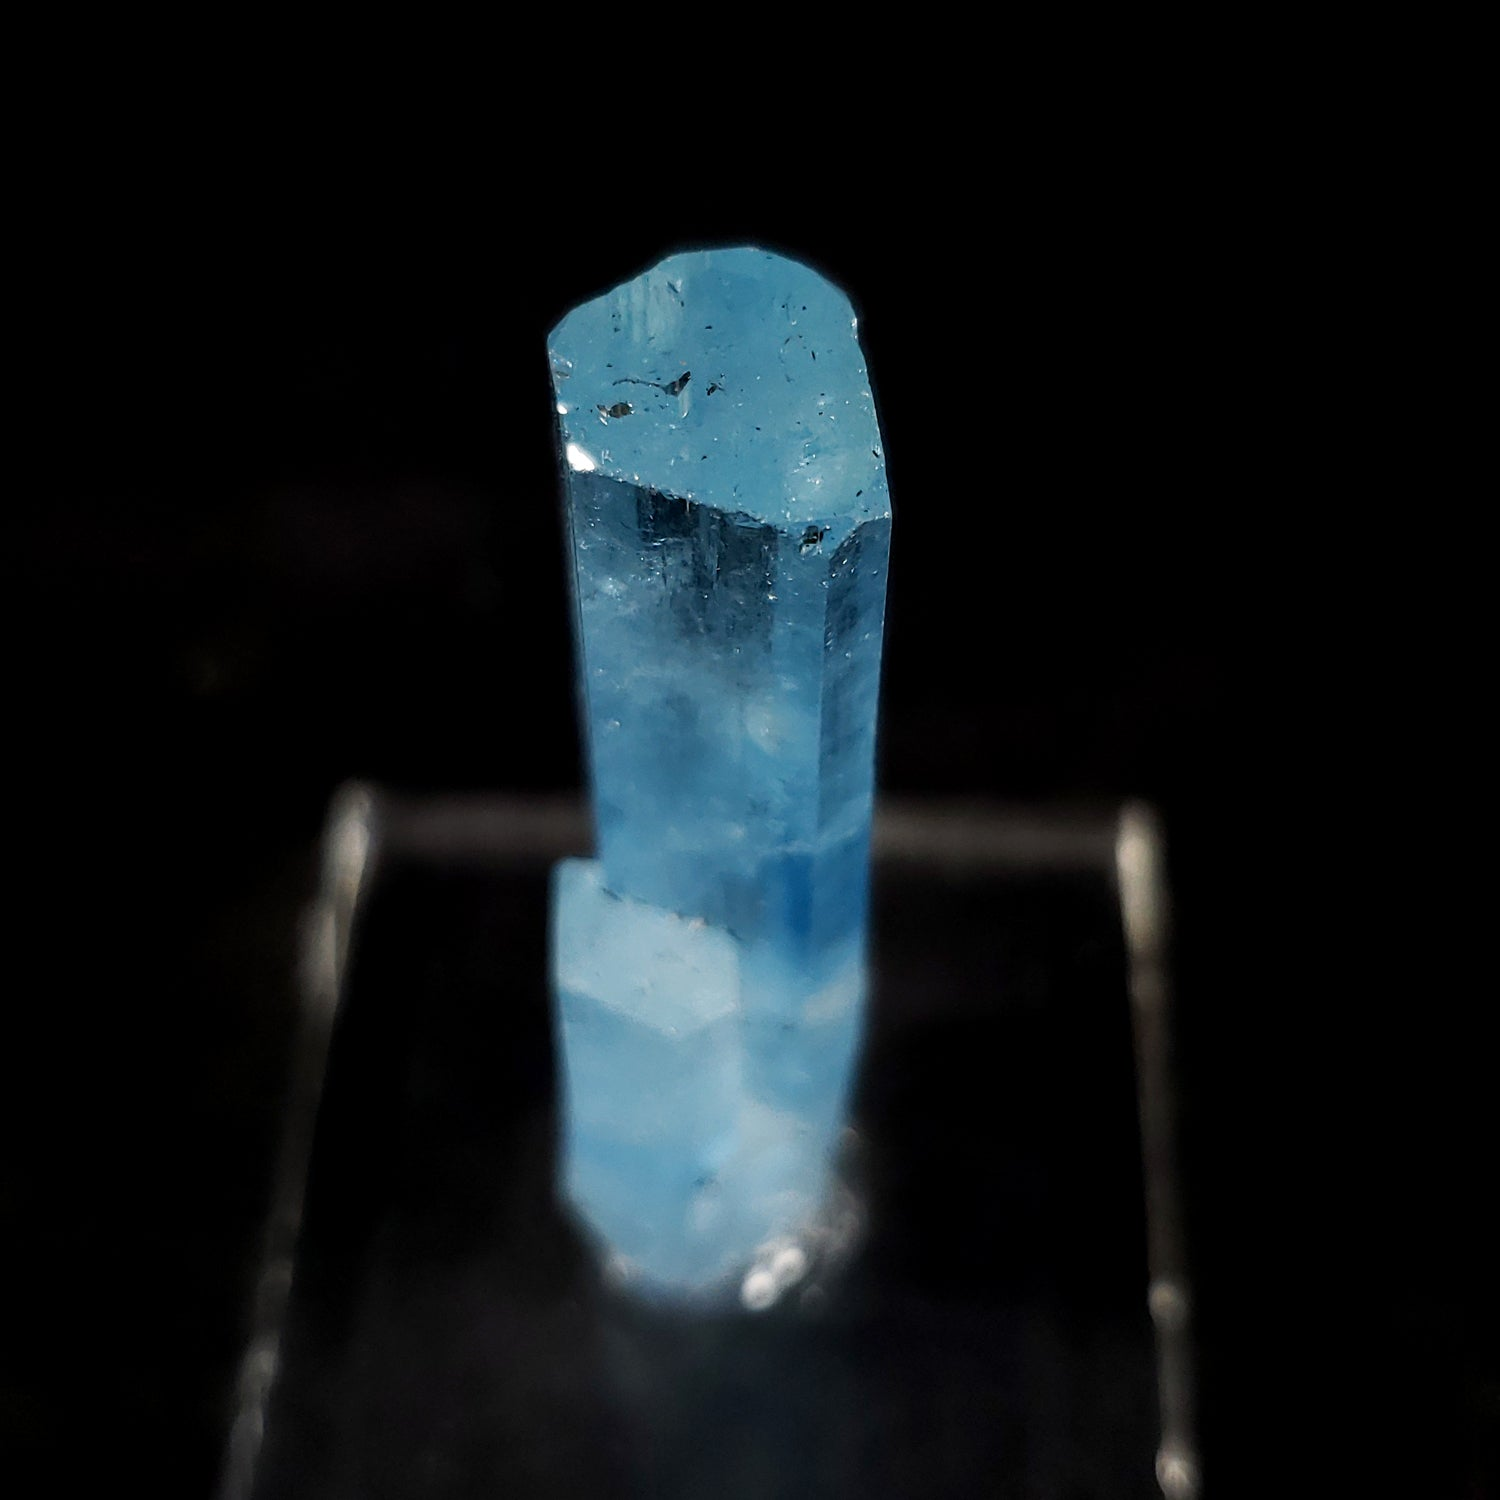 Terminated Aquamarine Crystal from Nghe An Province Vietnam